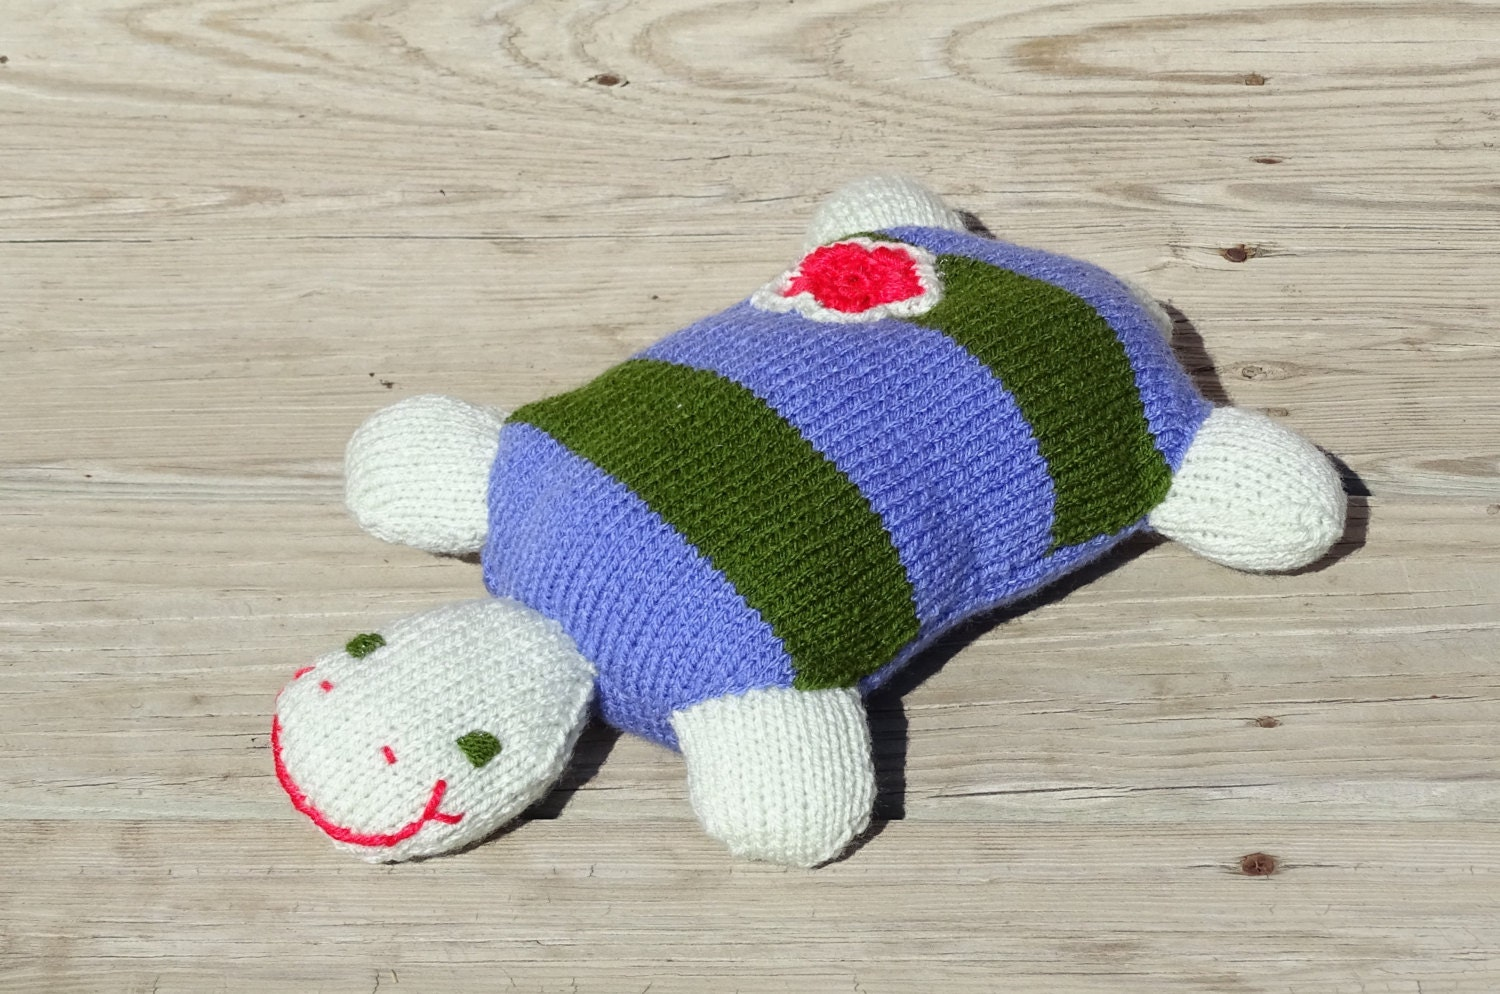 Knitting Patterns Turtle Toy : Knit Toy Knitted Turtle Plush Turtle Stuffed by KnittingDrops